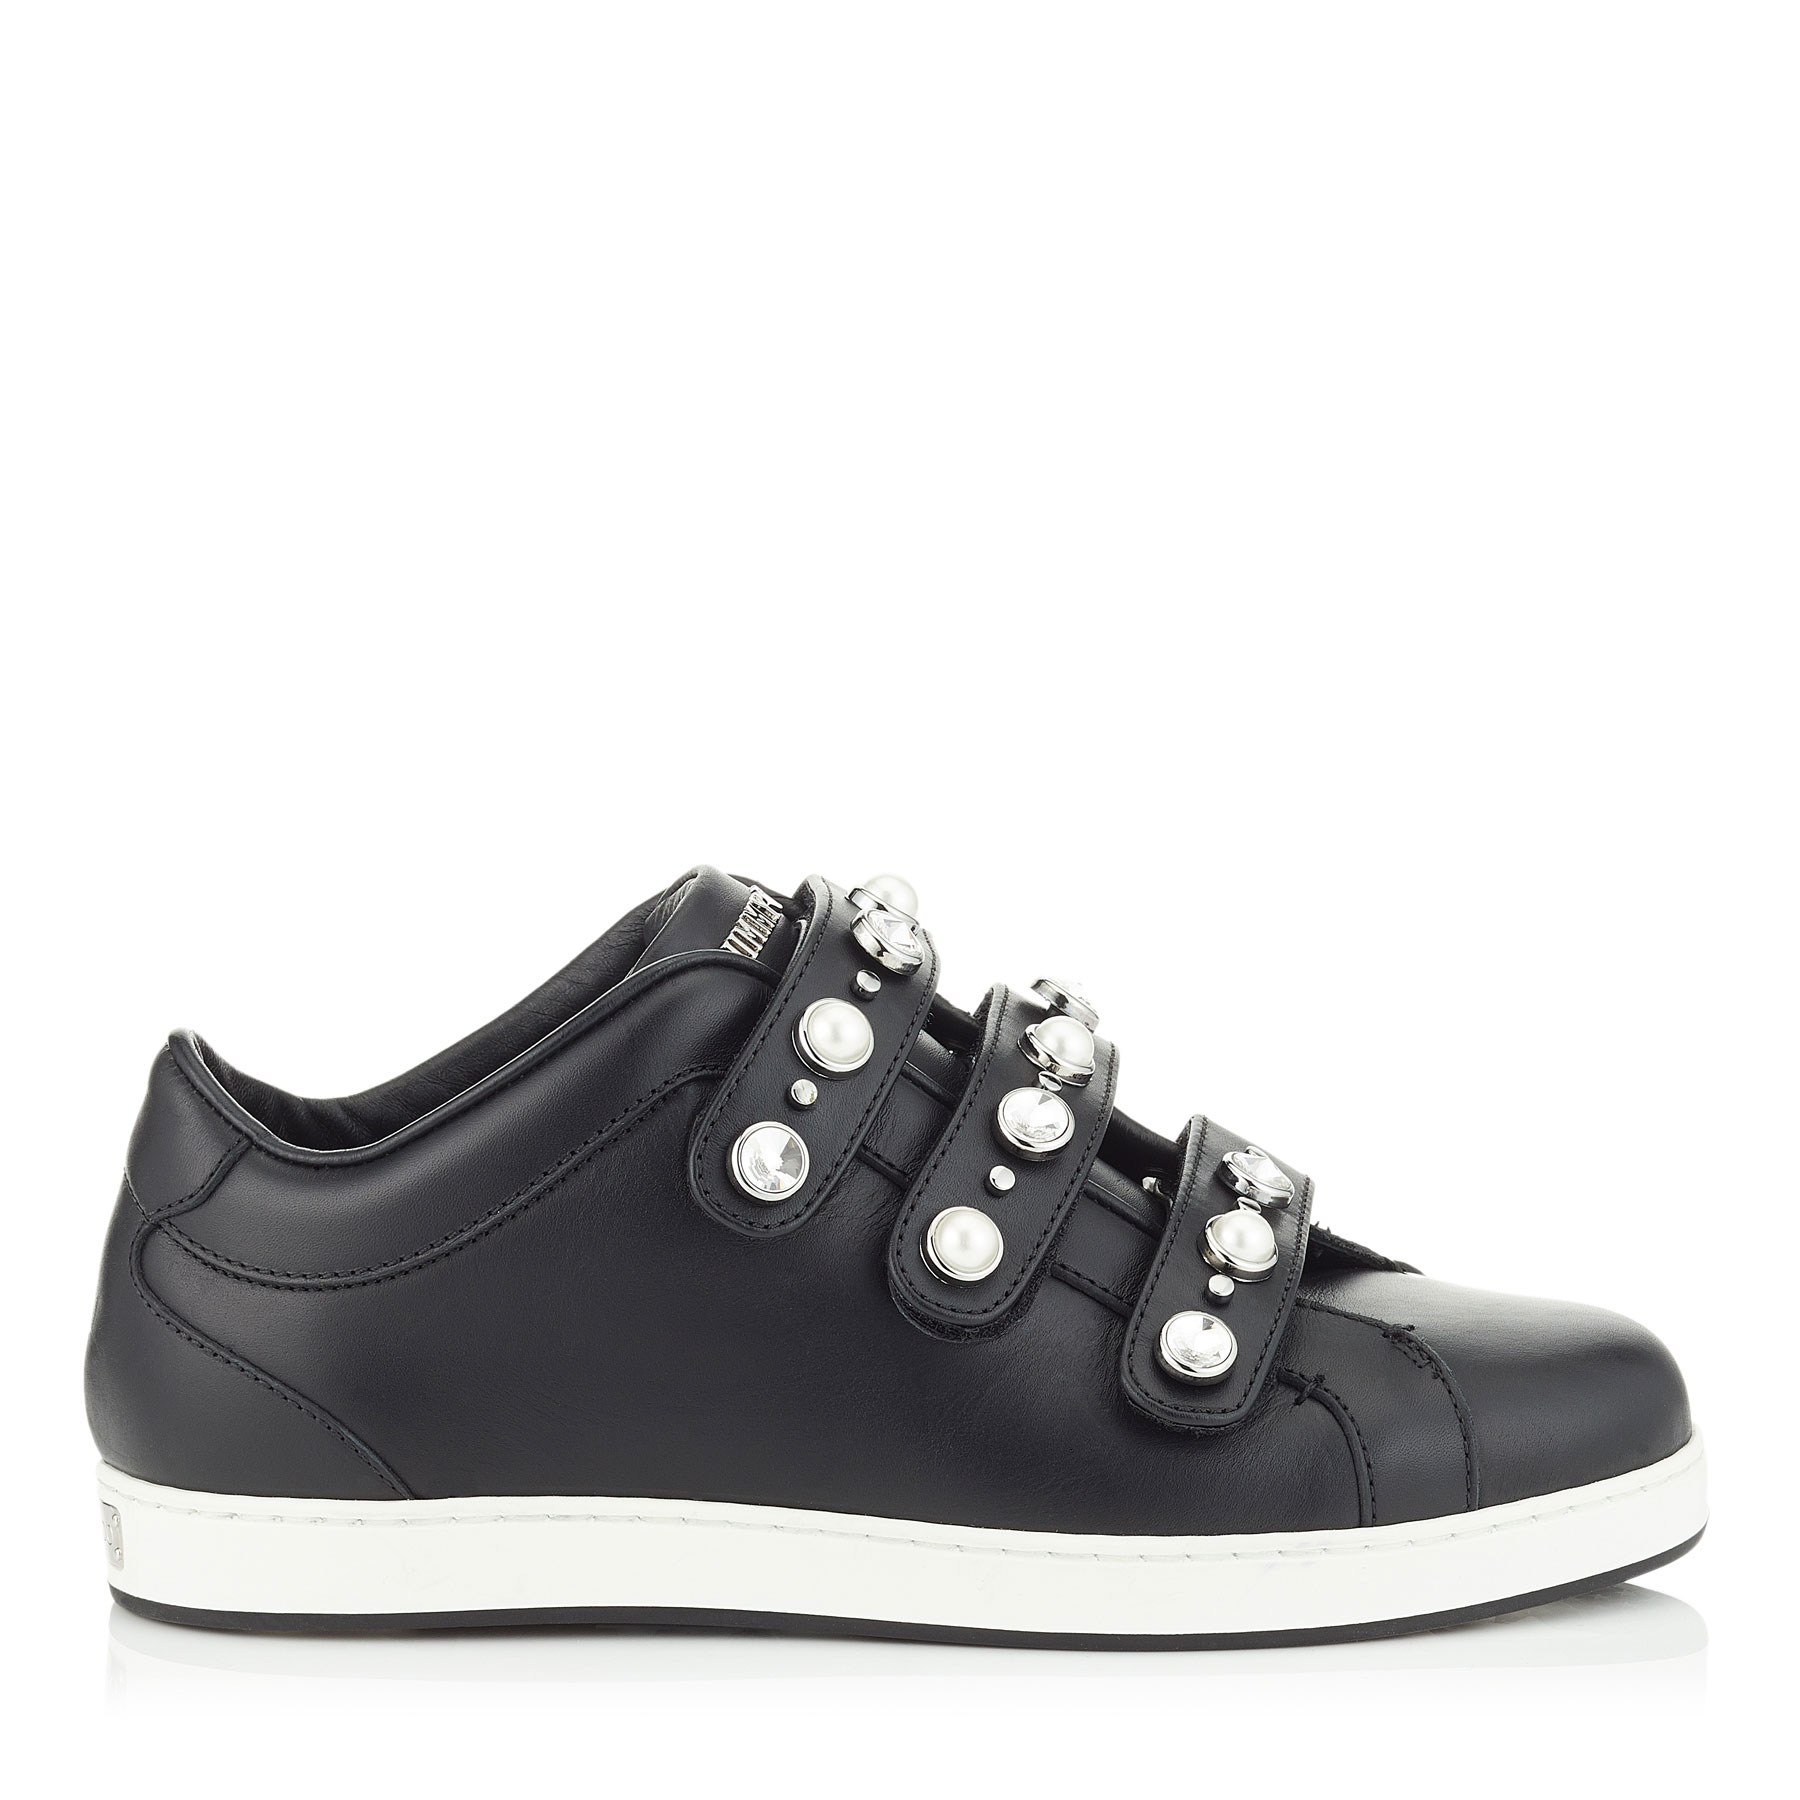 NY Black Nappa Leather Trainers with Beads and Crystals by Jimmy Choo